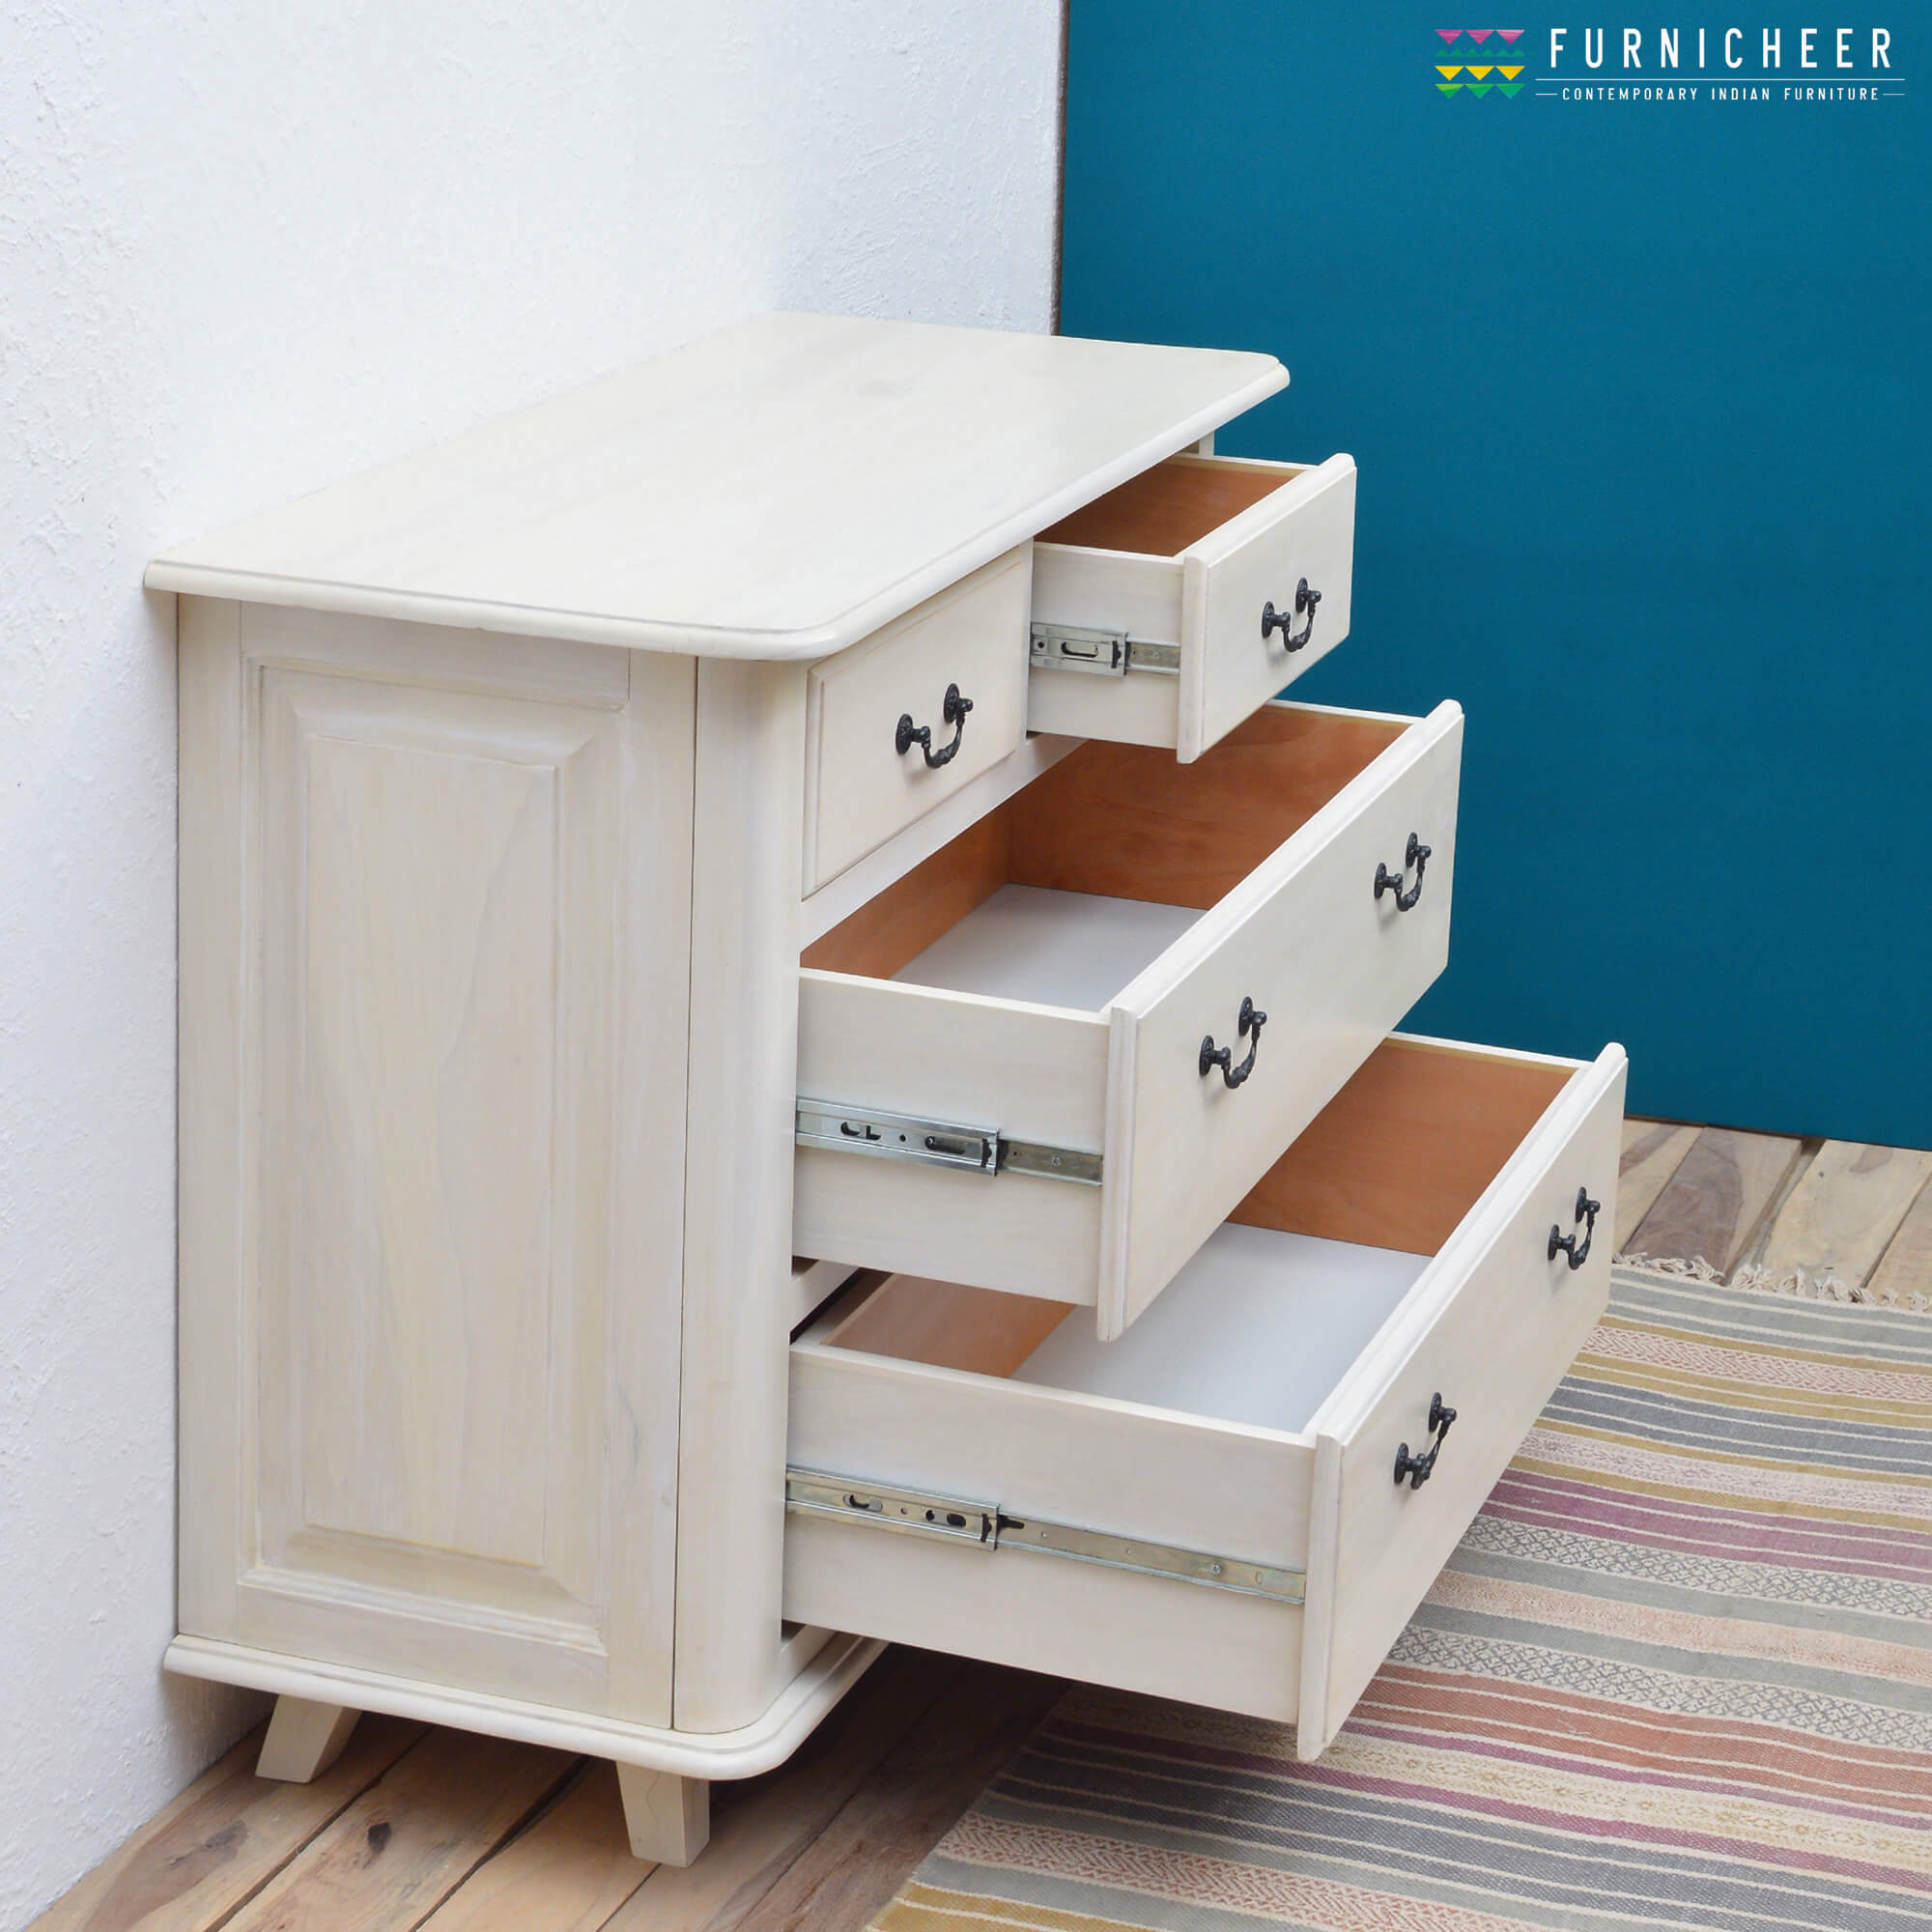 2. CHEST OF DRAWERS CDWT0001